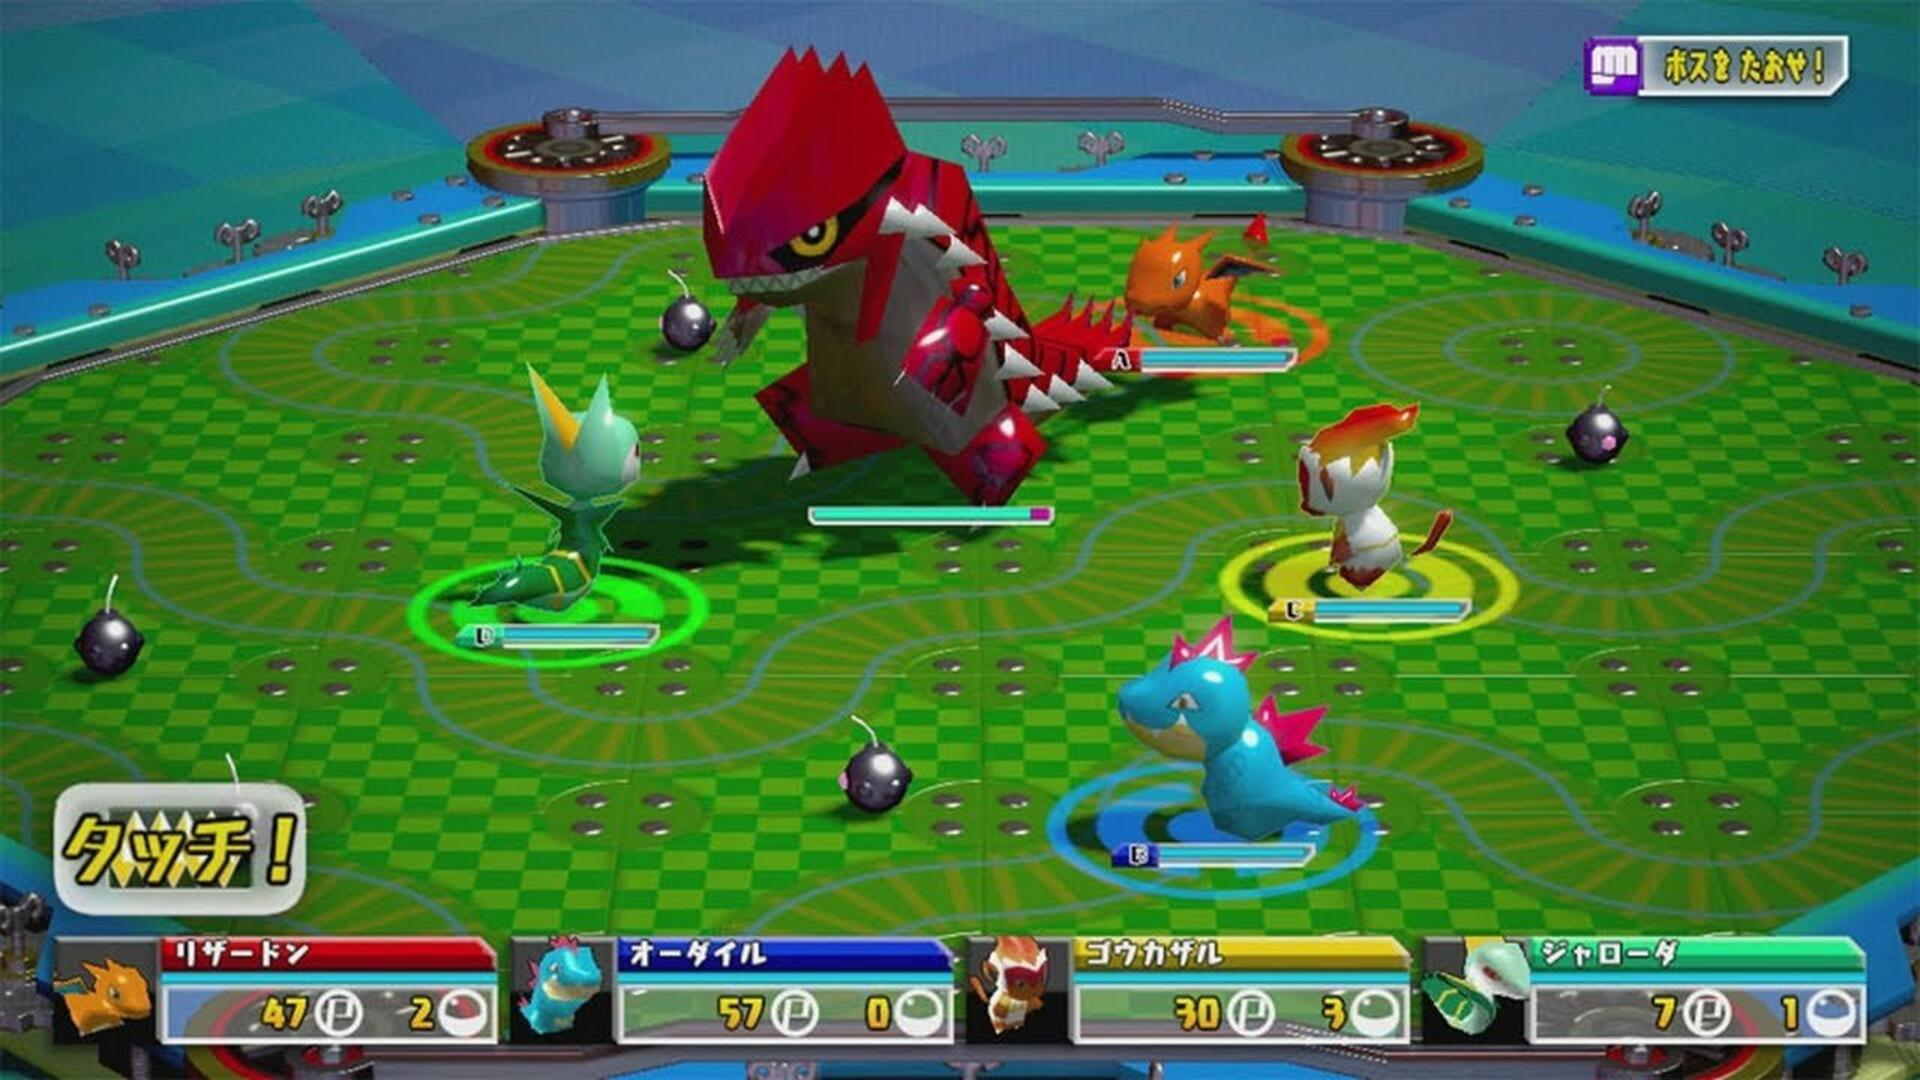 Pokemon Rumble U Brings Action-Figure Scanning Action to Wii